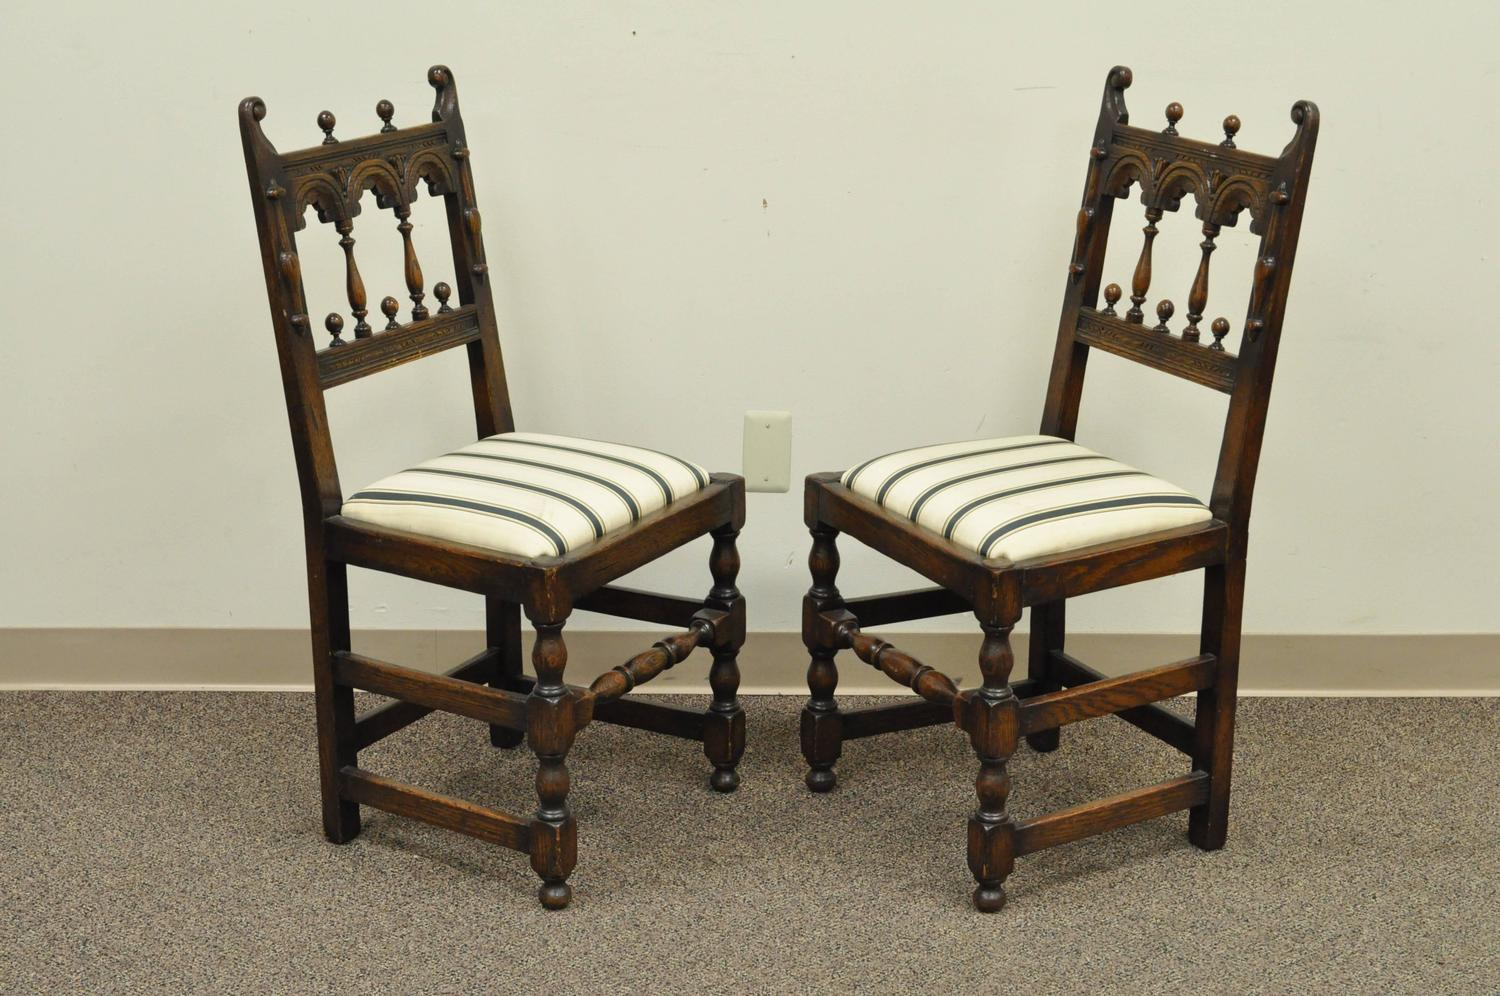 medieval dining chairs desk chair with footrest set of eight solid carved oak 1930s jacobean or gothic